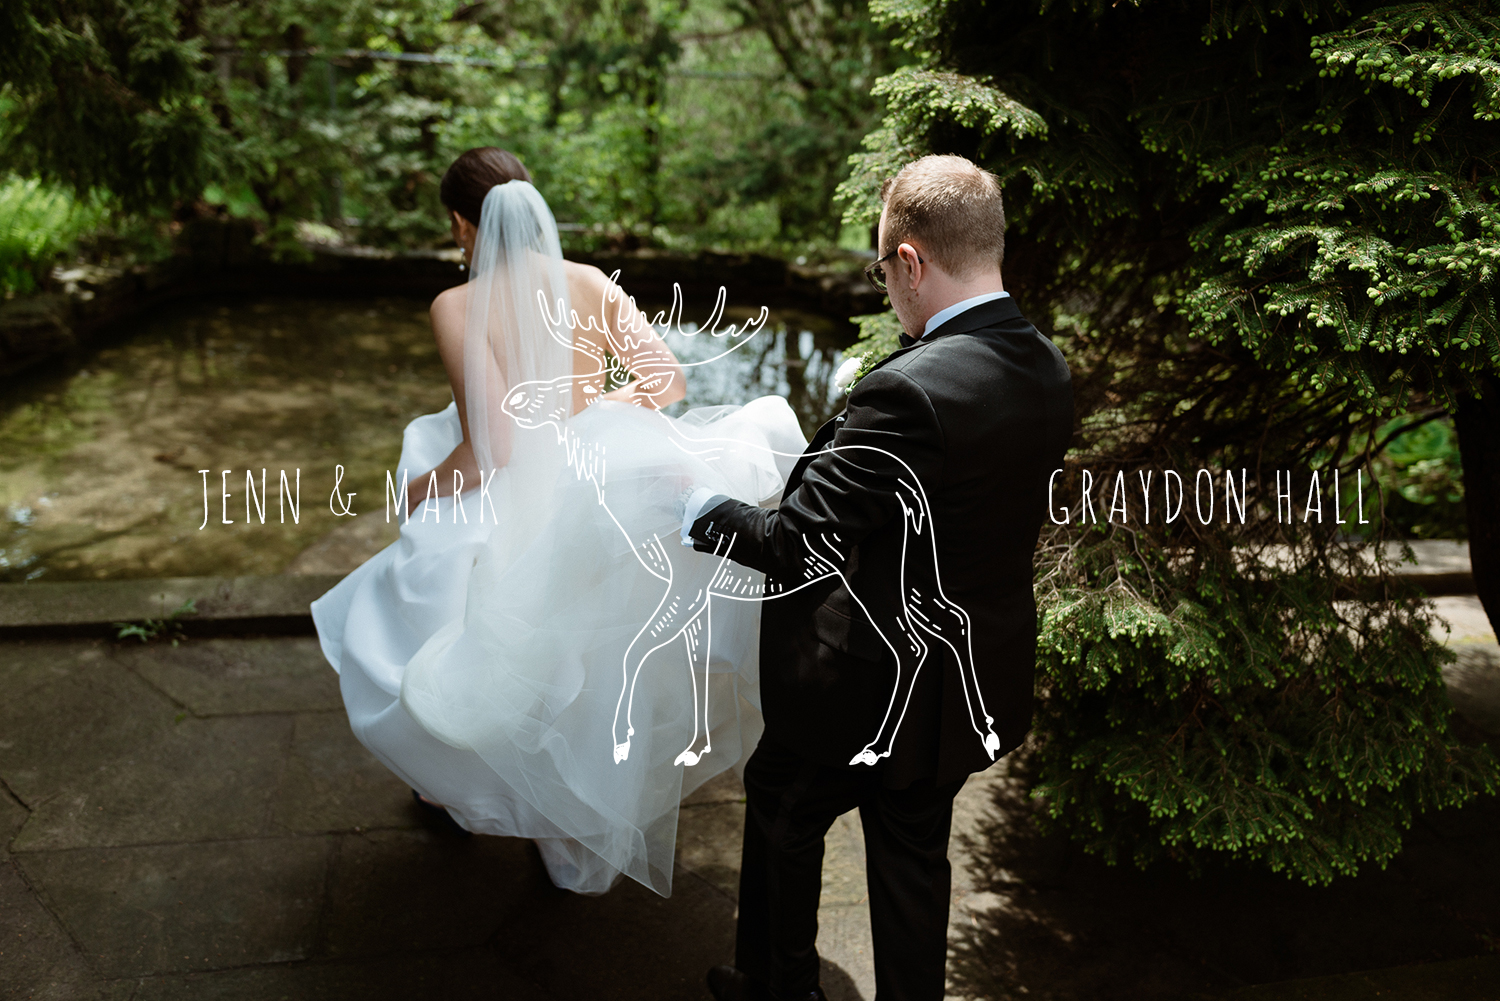 TITLE-inner-Graydon-Hall-wedding-photography-analog.jpg